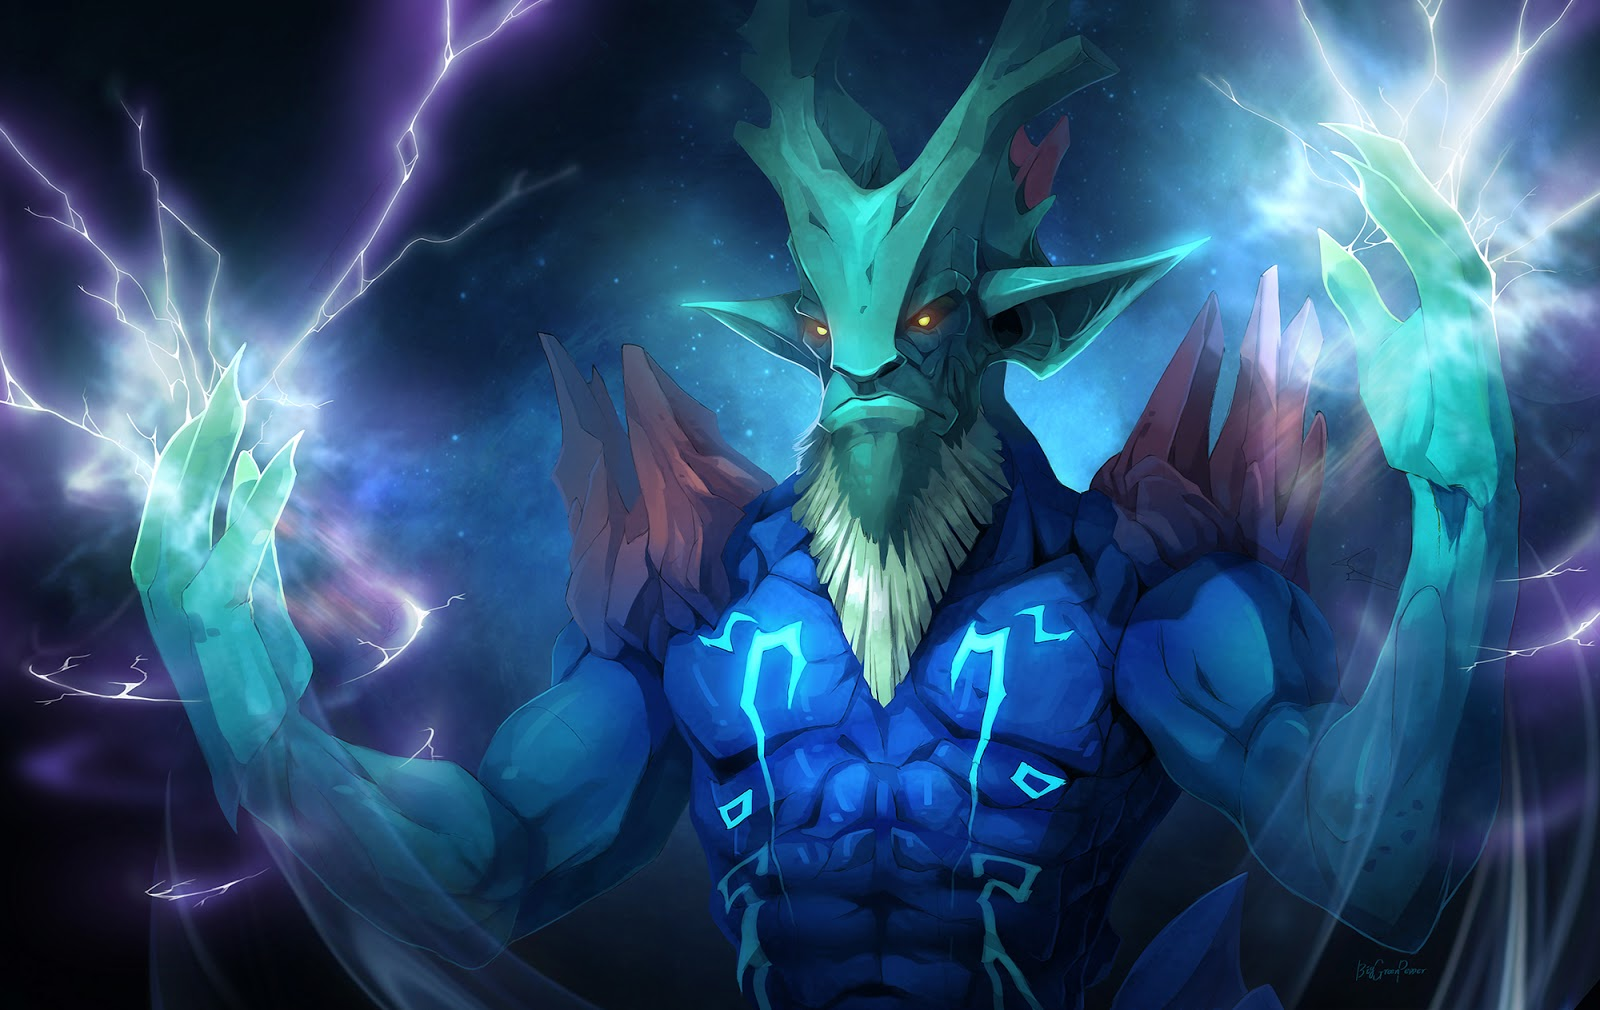 dota 2 wallpapers dota 2 fan art leshrac by biggreenpepper